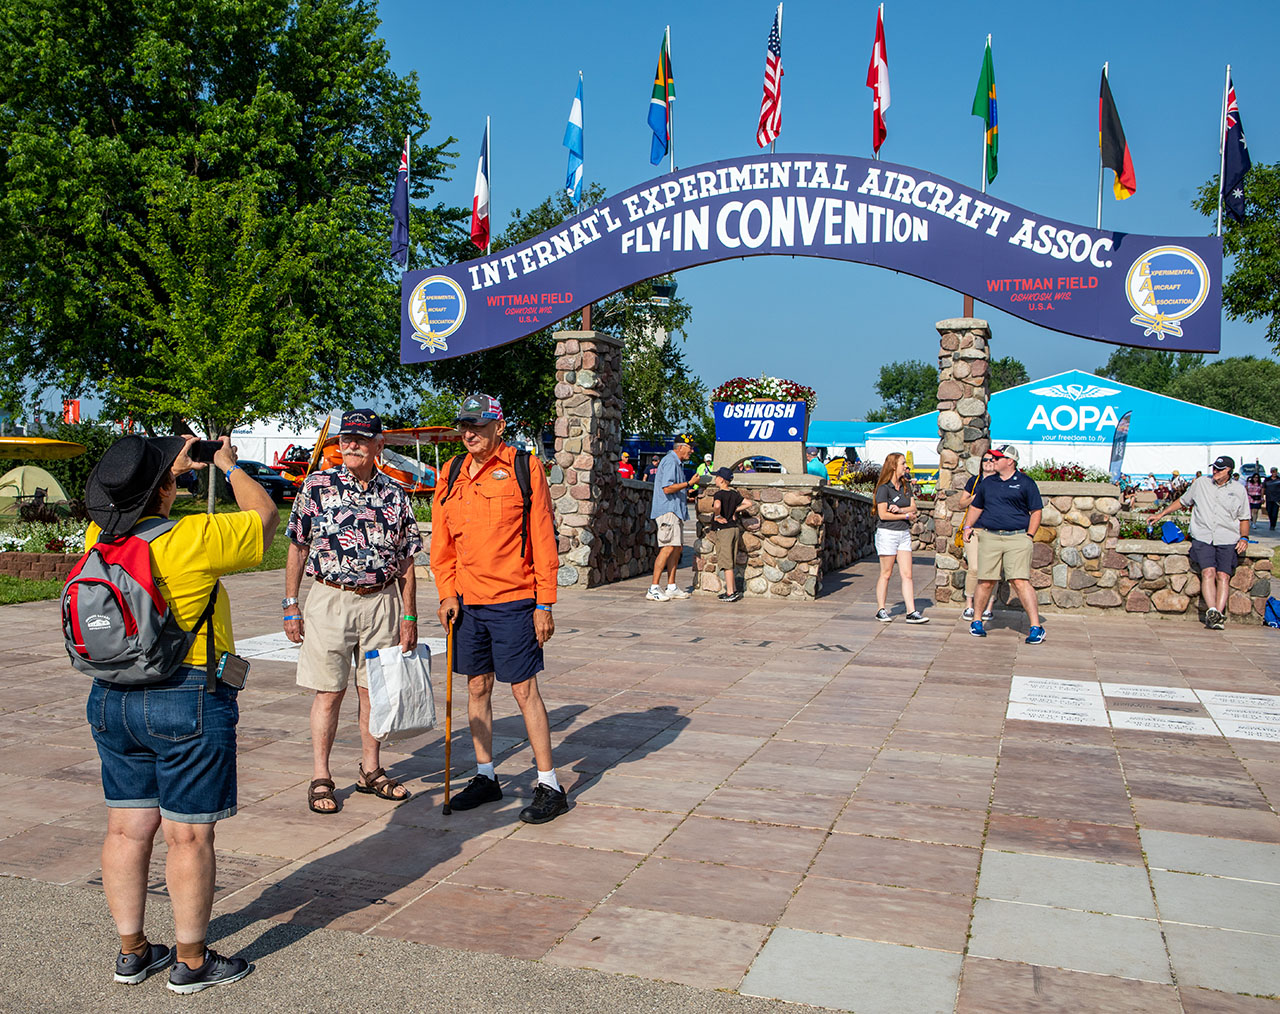 The arched gateway entrance at EAA AirVenture Oshkosh.